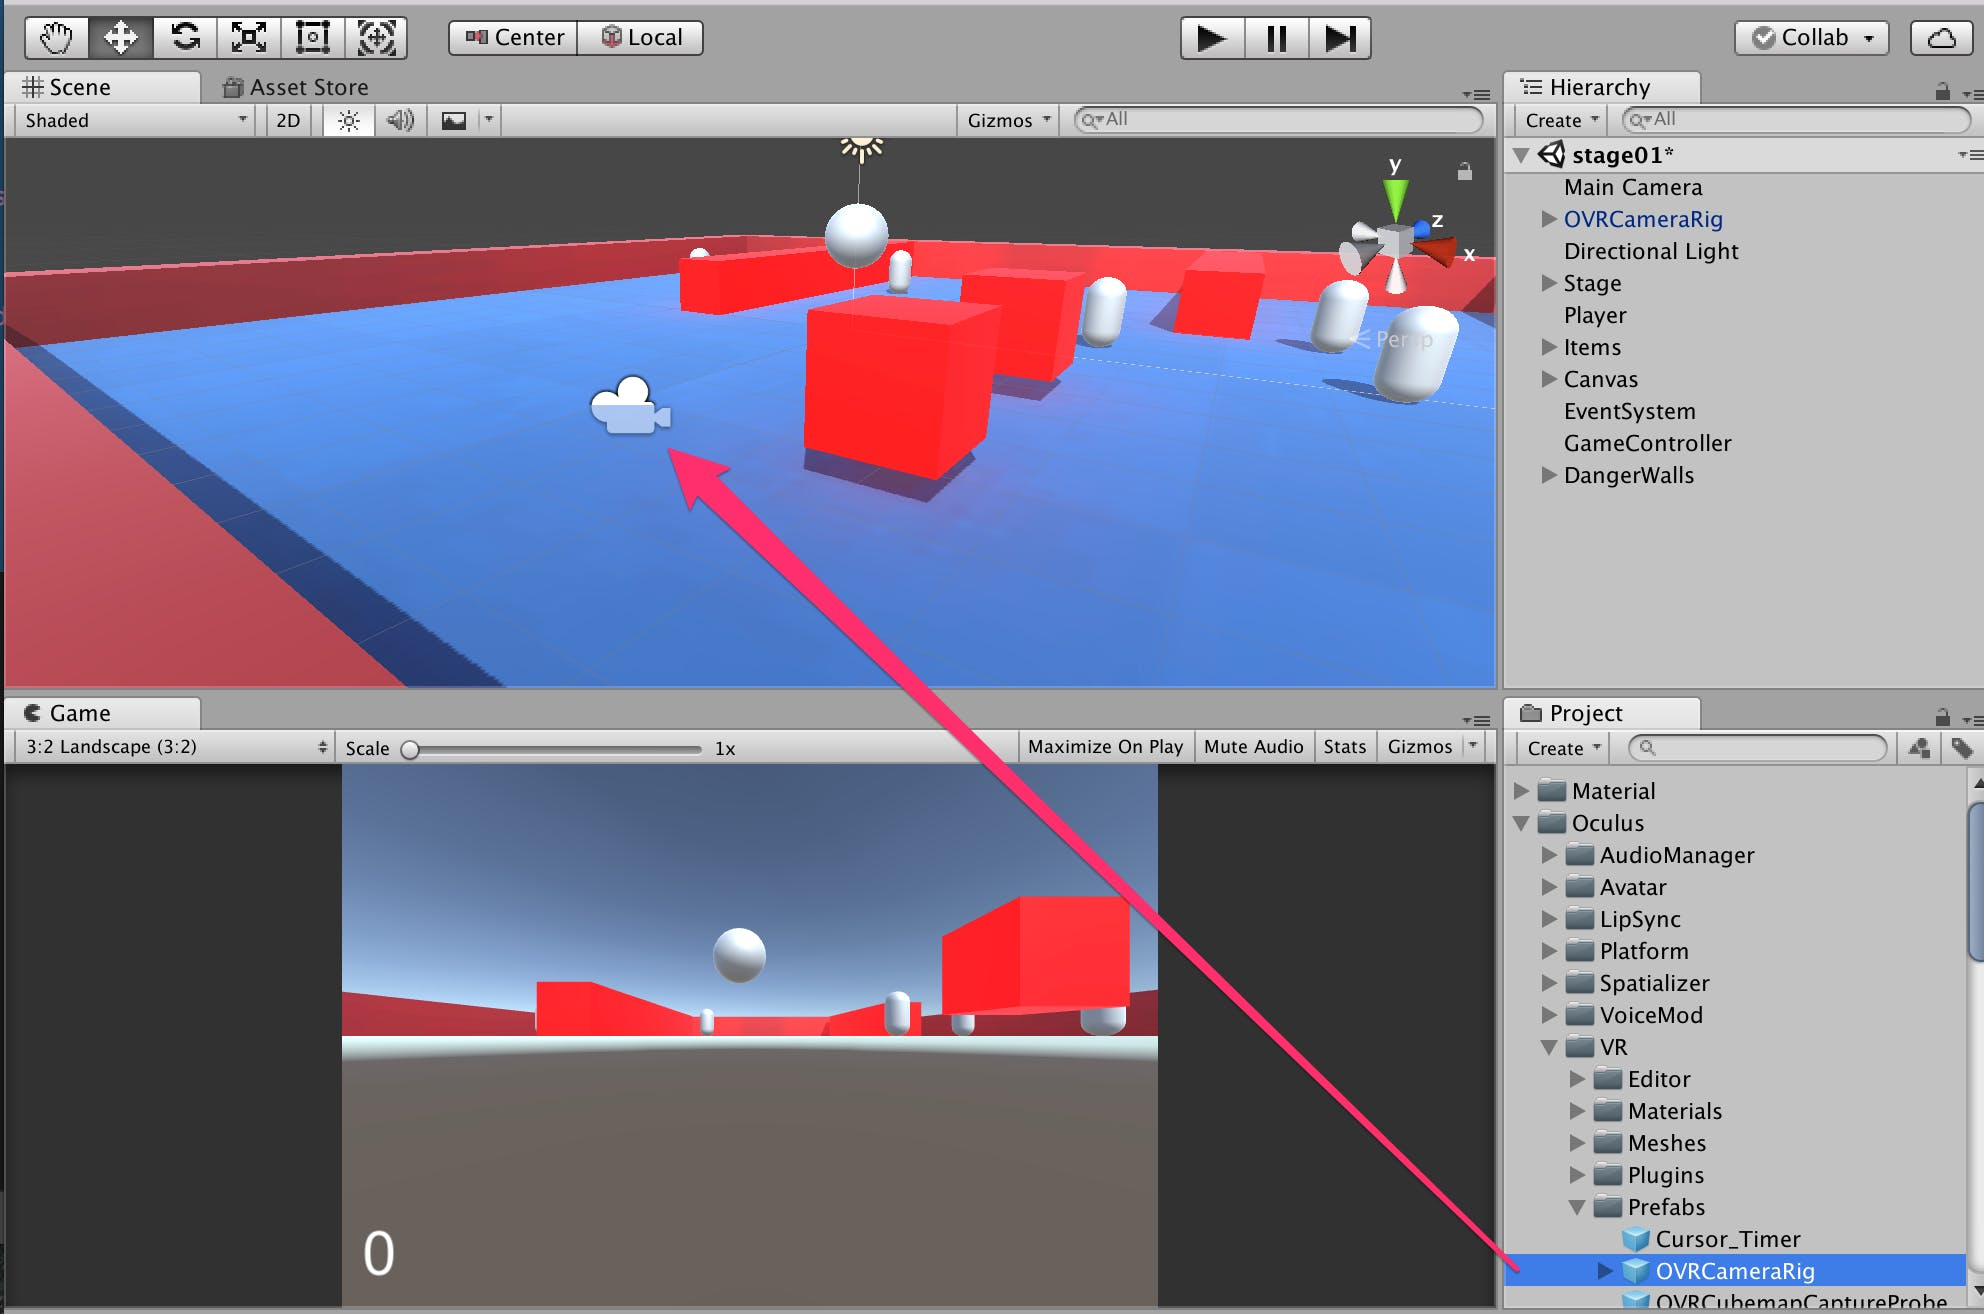 Unity_2018_1_0f2_Personal__64bit__-_stage01_unity_-_Roll-a-Ball_-_Android__Personal___Metal__と_Assembly-CSharp_–_Assets_Script_PlayerBallController_cs__–_Visual_Studio_Community_2017_for_Mac.png